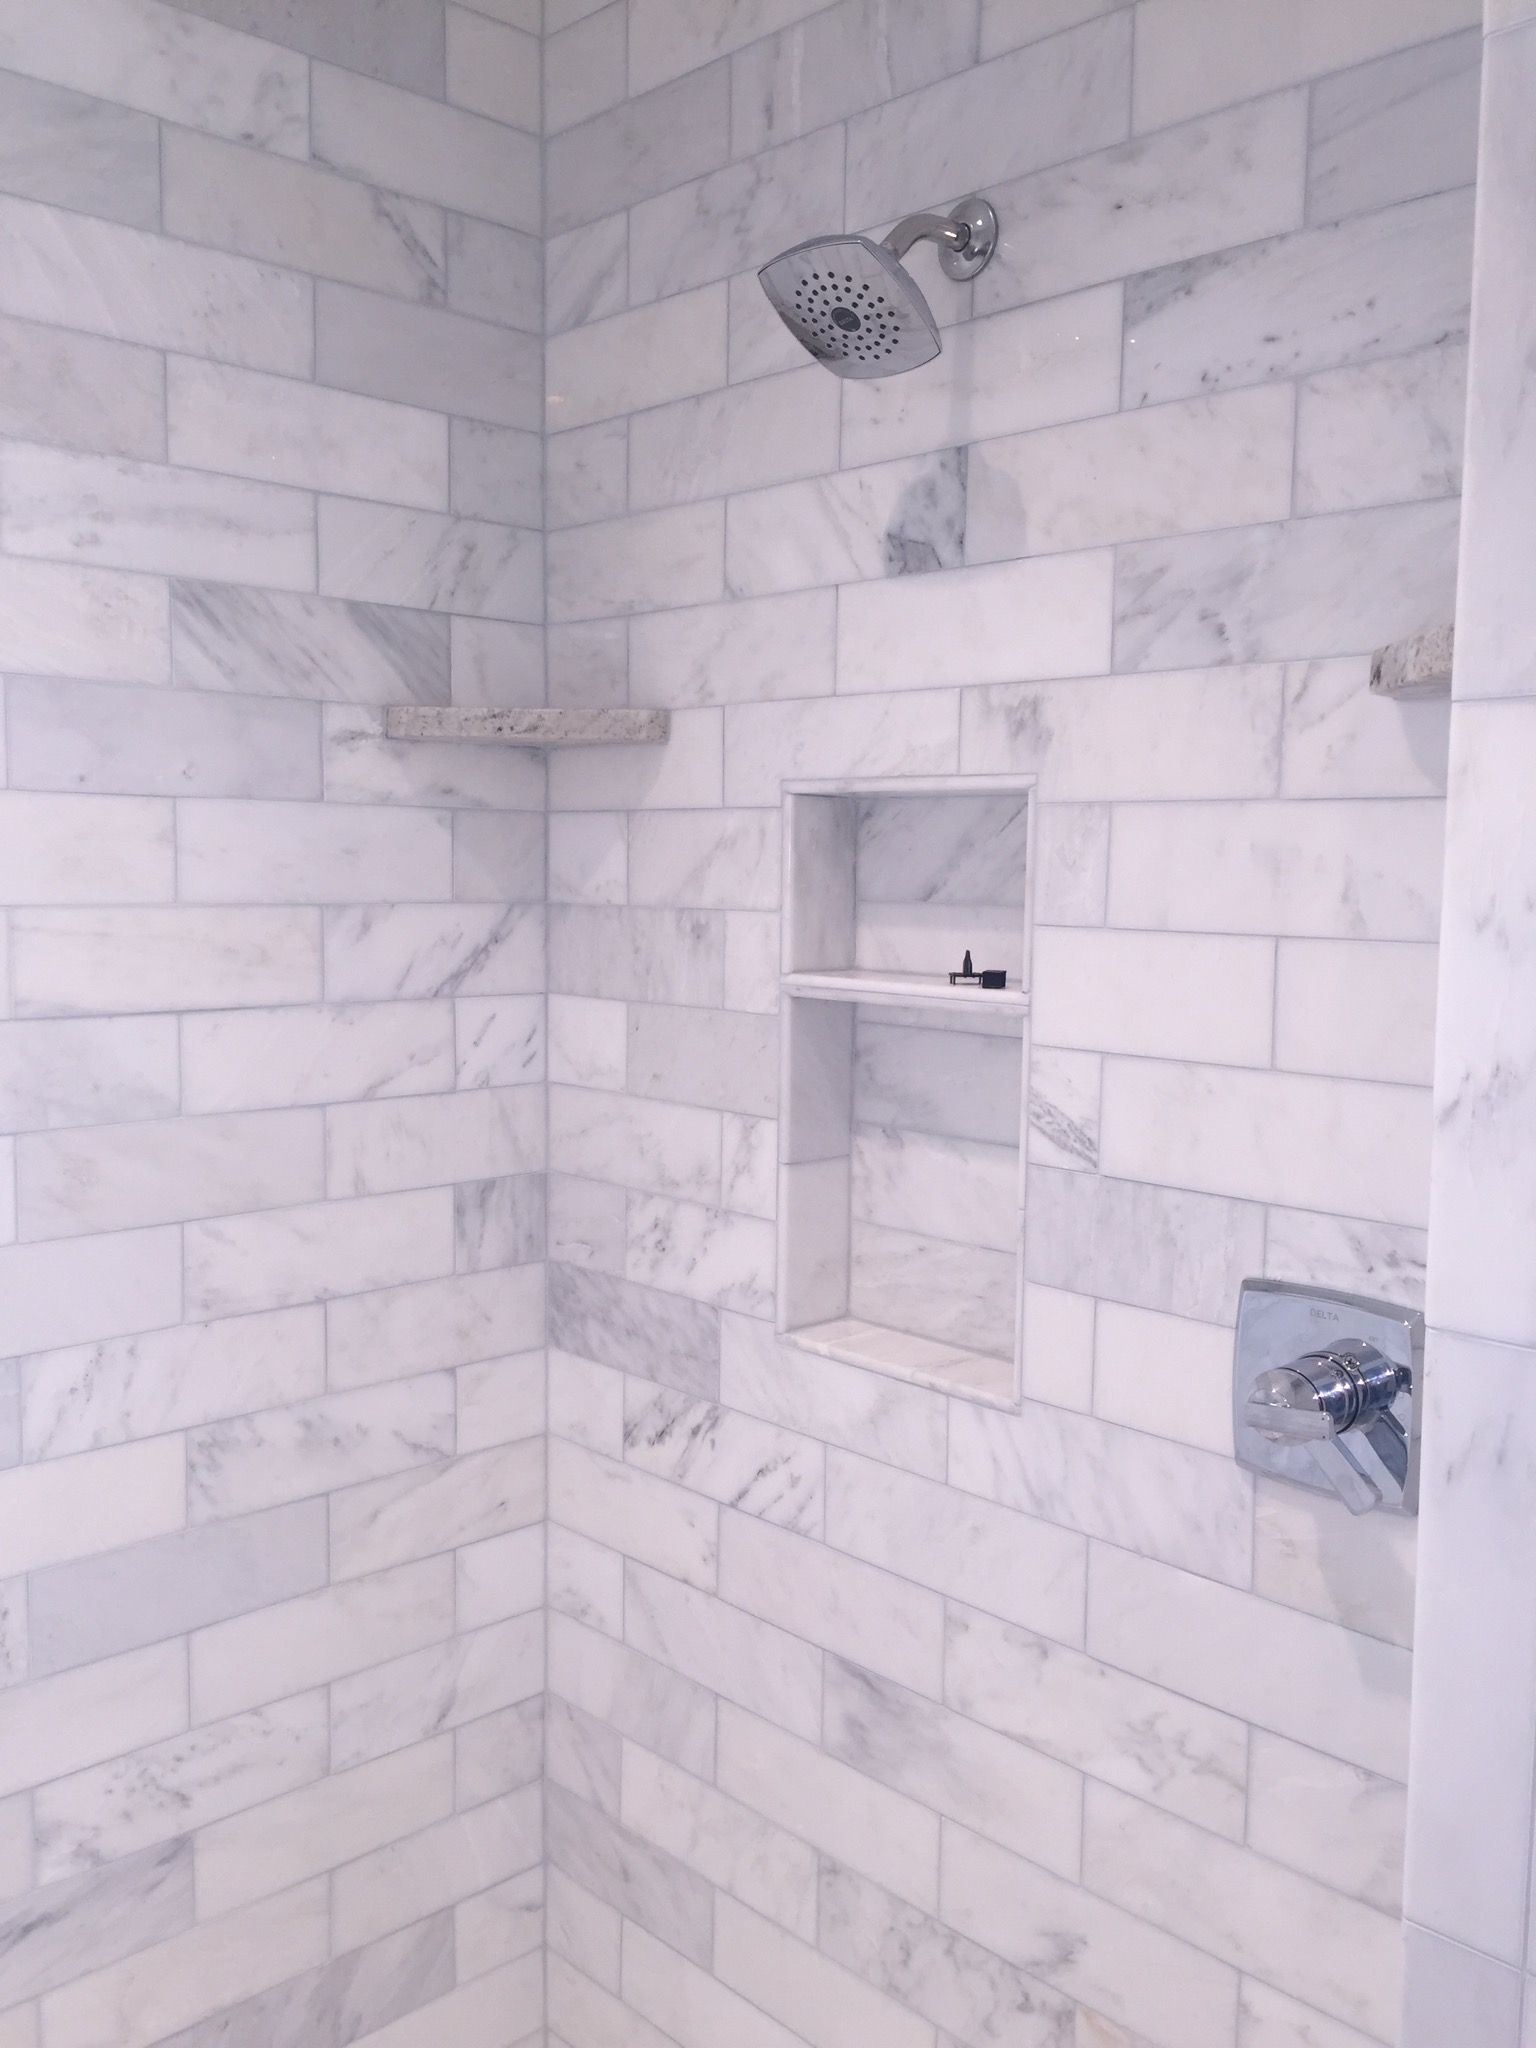 Our Shower In The Master Bath Love It 4x12 Marble Subway Tile With Marble Hexagon Tile Floor Marble Subway Tiles Modern Bathroom Tile Marble Shower Walls